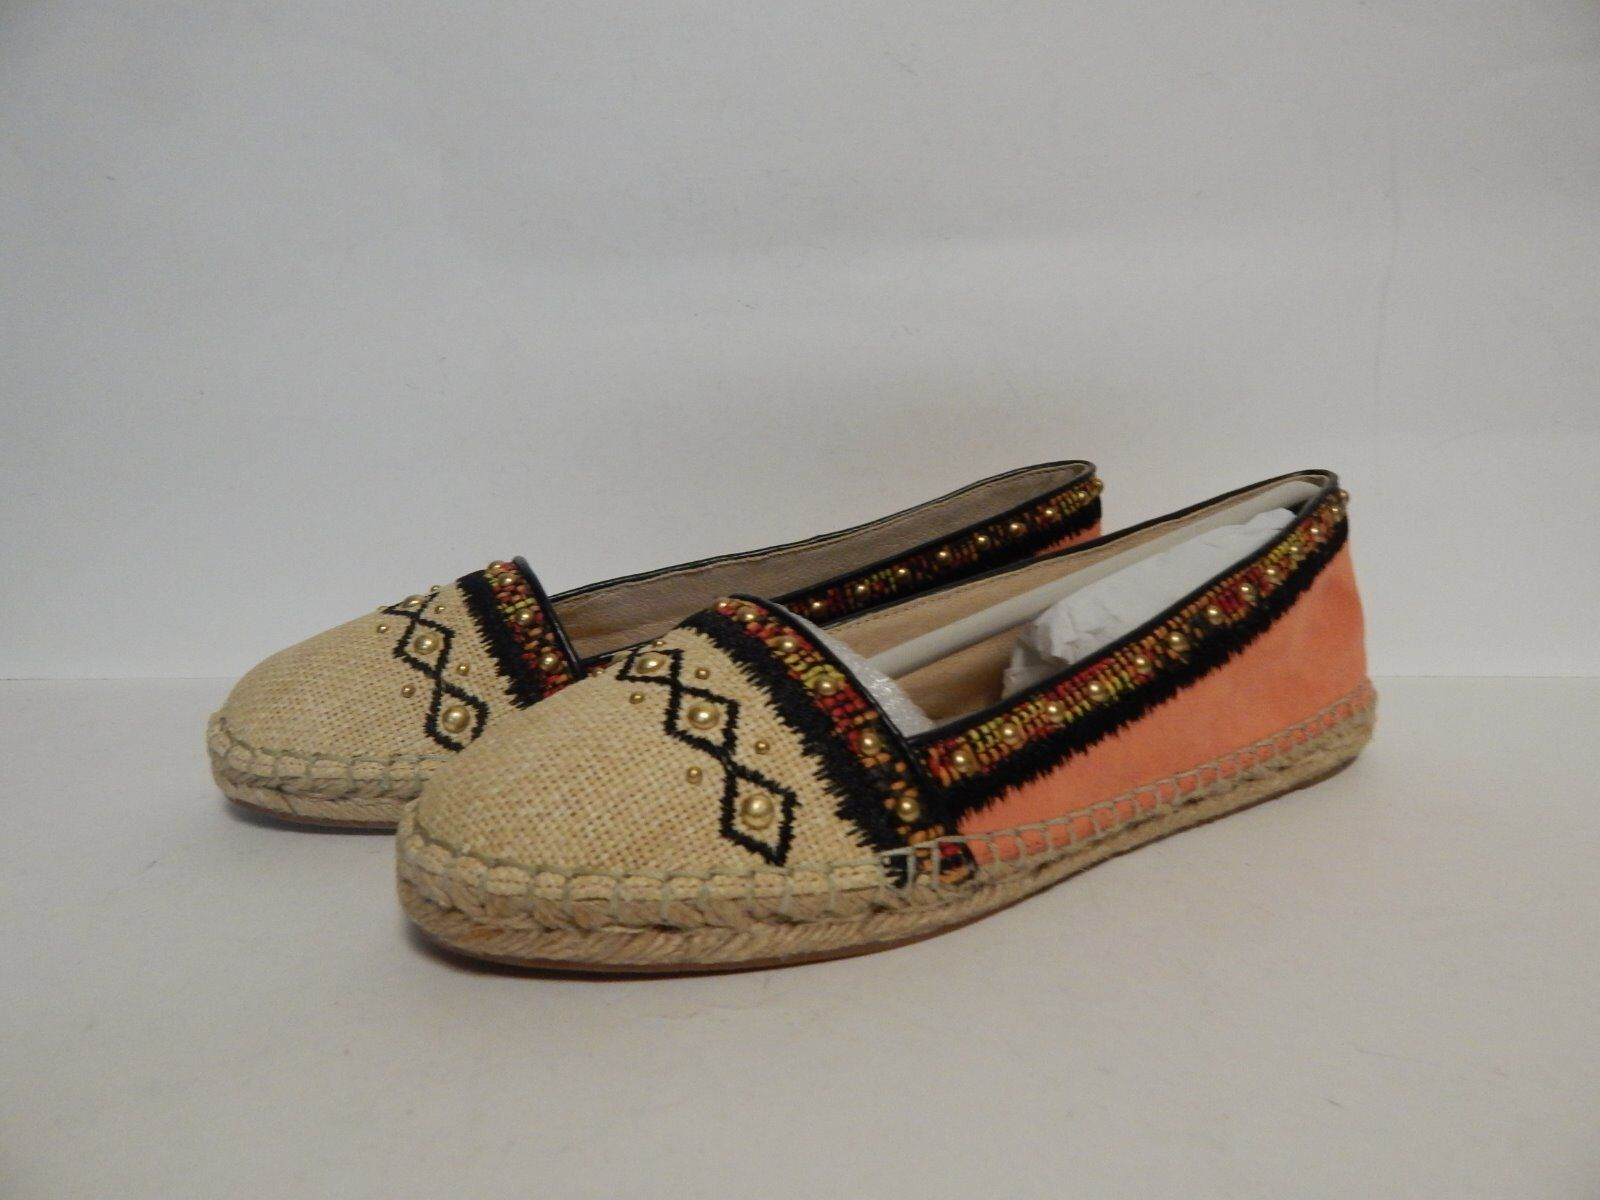 House of Harrow Kat Slip On Espadrille Flat 8 M Pink Coral  New with Box